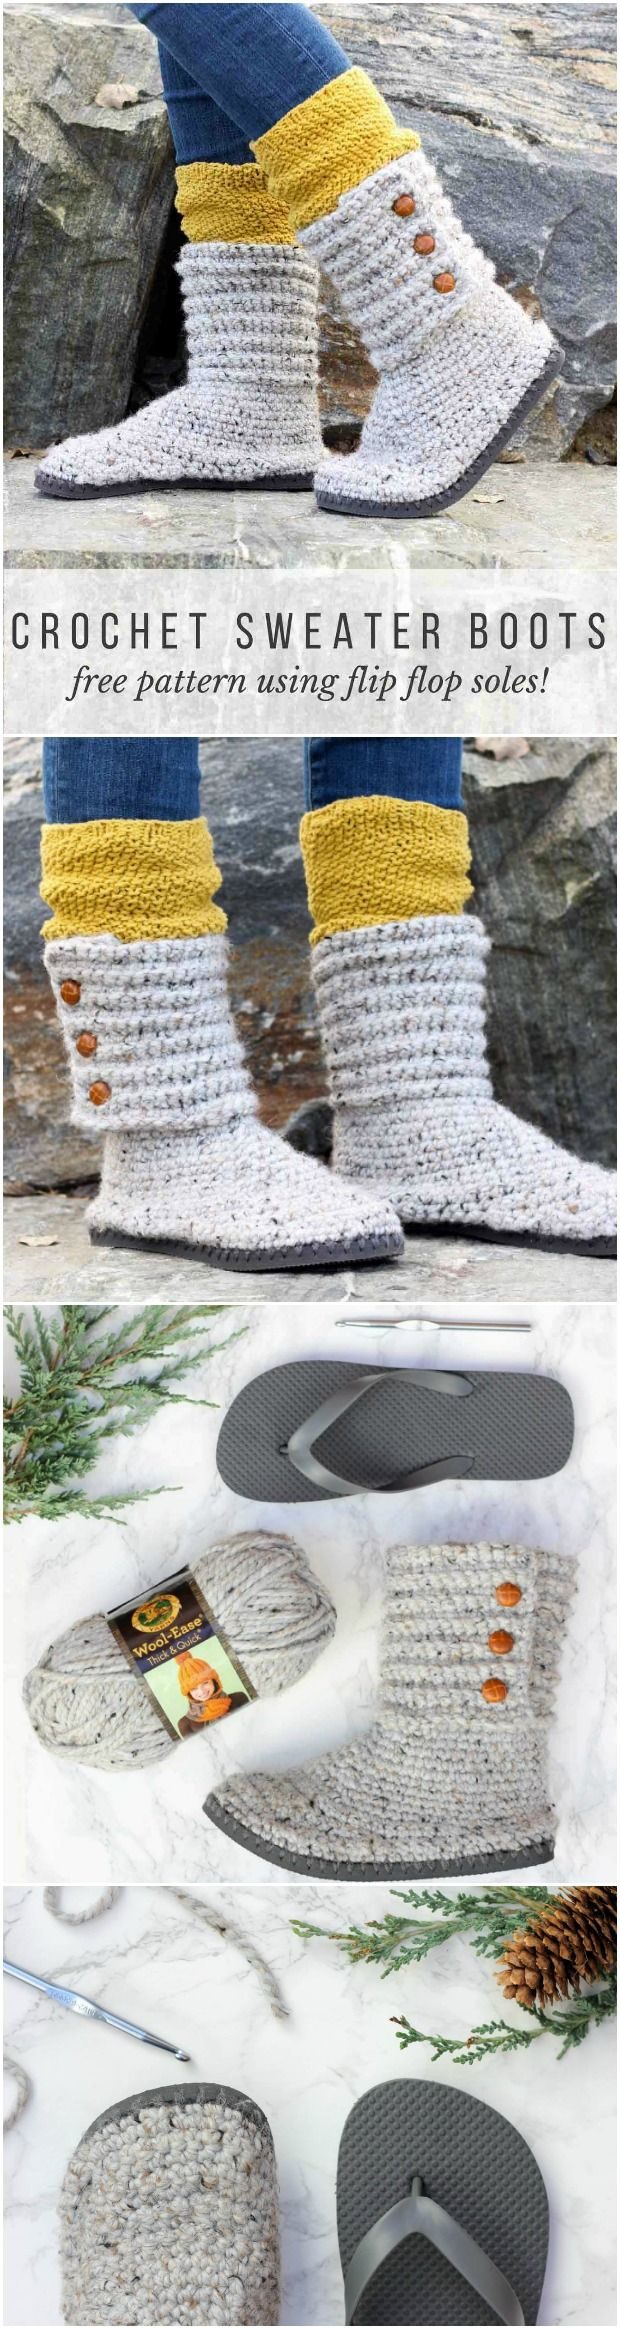 Cabit Boots With Flip Flop Soles | Crochet, Flipping and Patterns